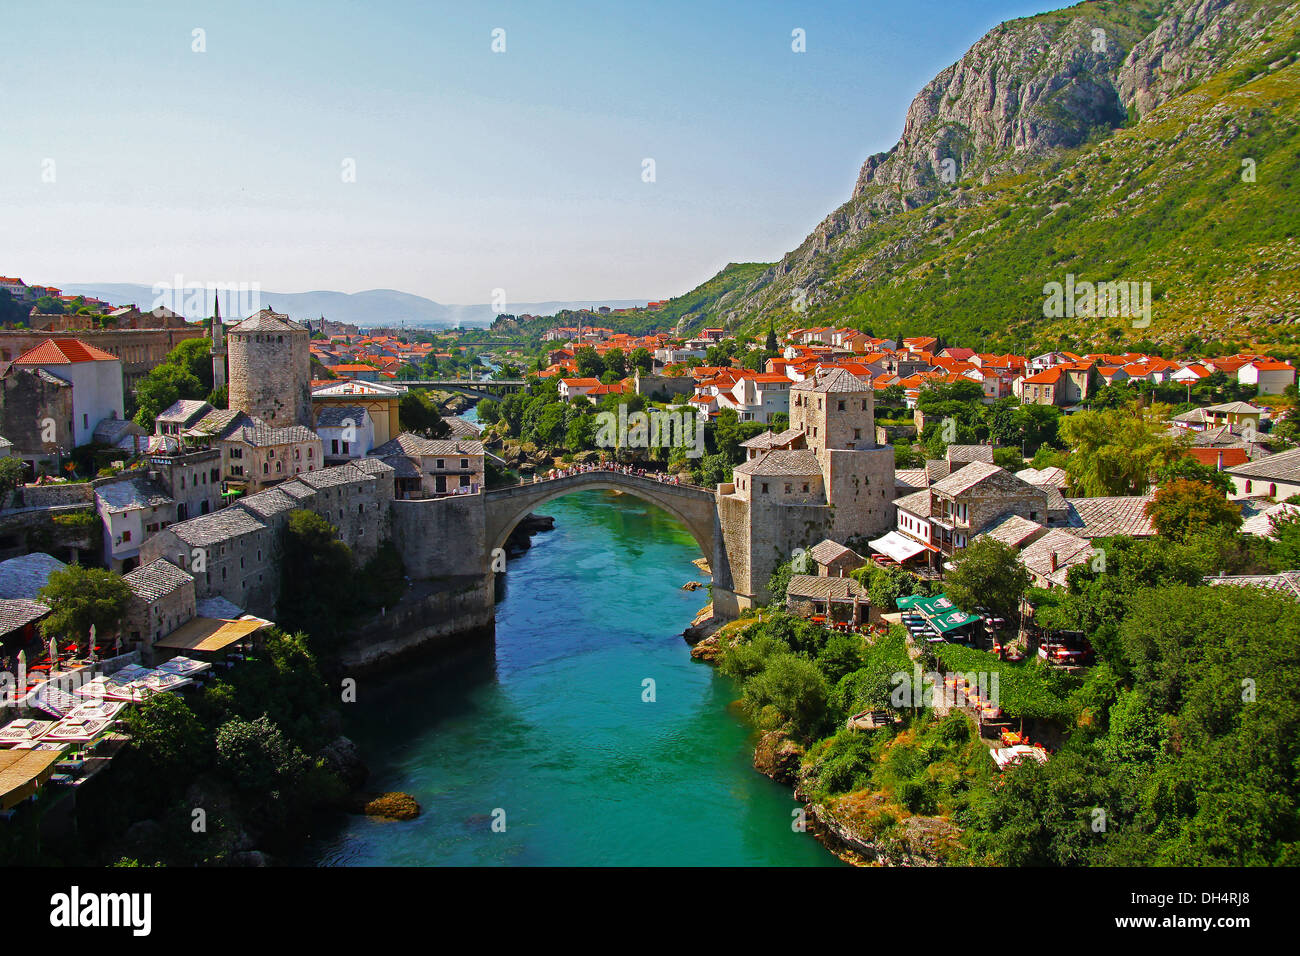 Rebuilt Stari Most bridge in Mostar, Bosnia-Herzegovina. Stock Photo